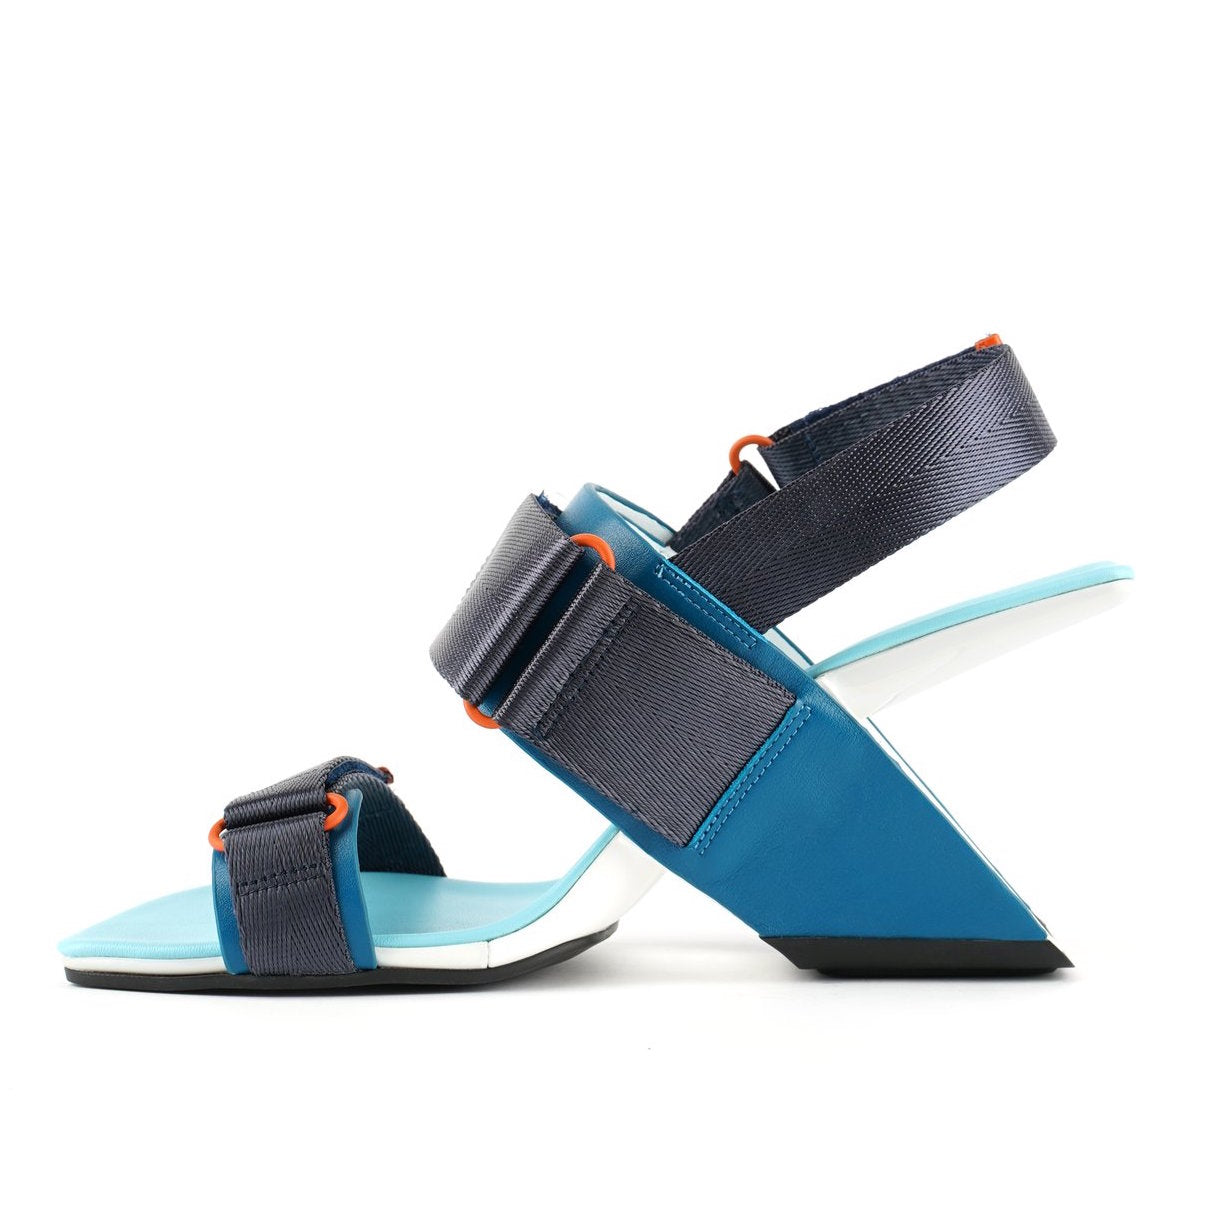 Inner view of the united nude loop run high heel sandal. This sandal is blue with a black back strap, a black strap over the instep, and a black strap over the toes.